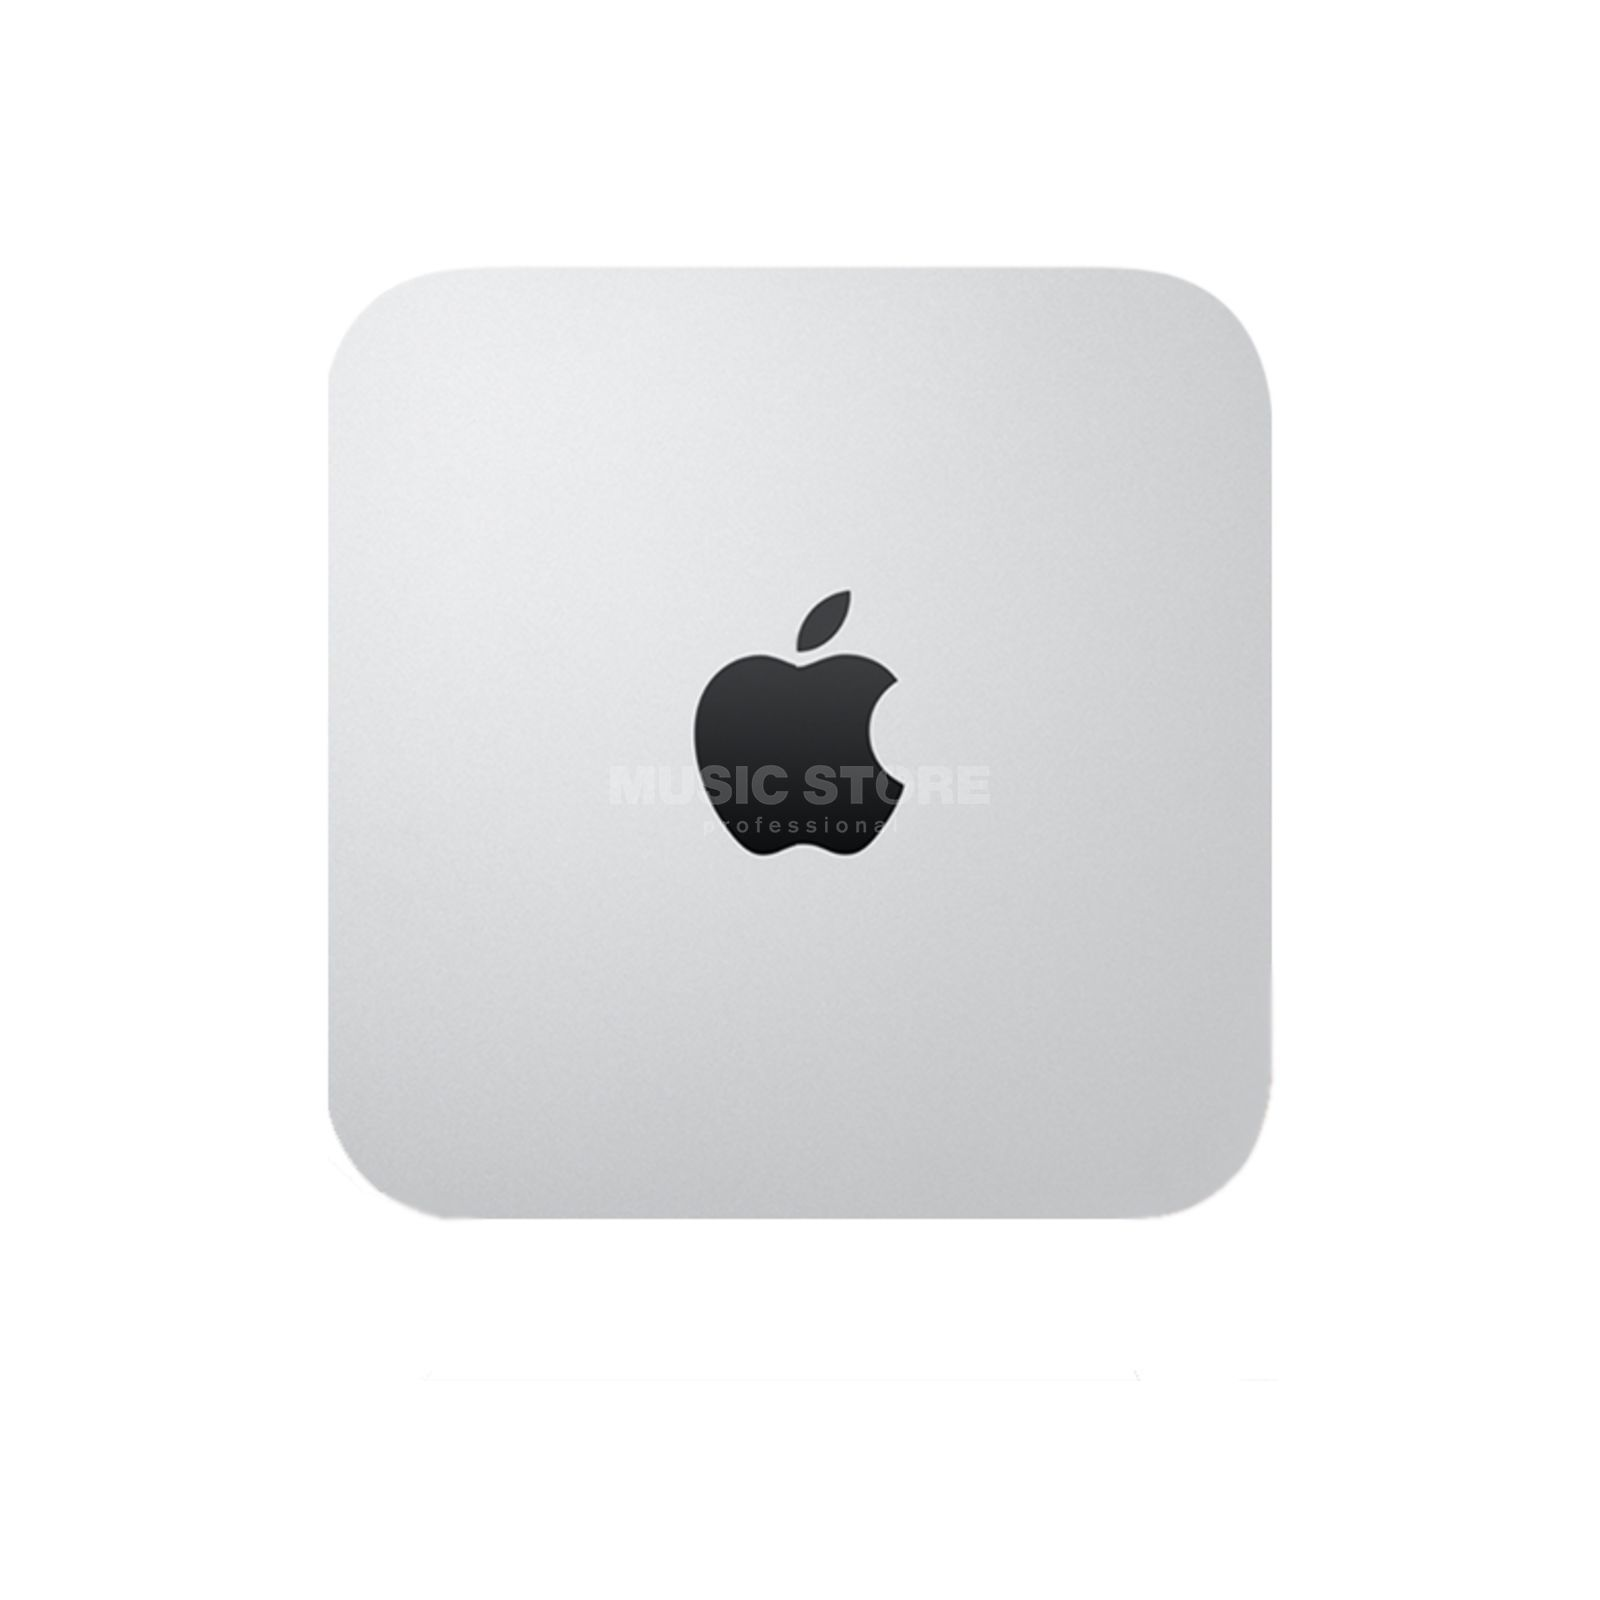 Apple Mac mini 2.6GHz Dual-Core i5 8GB RAM, 1TB, Intel Iris Produktbillede